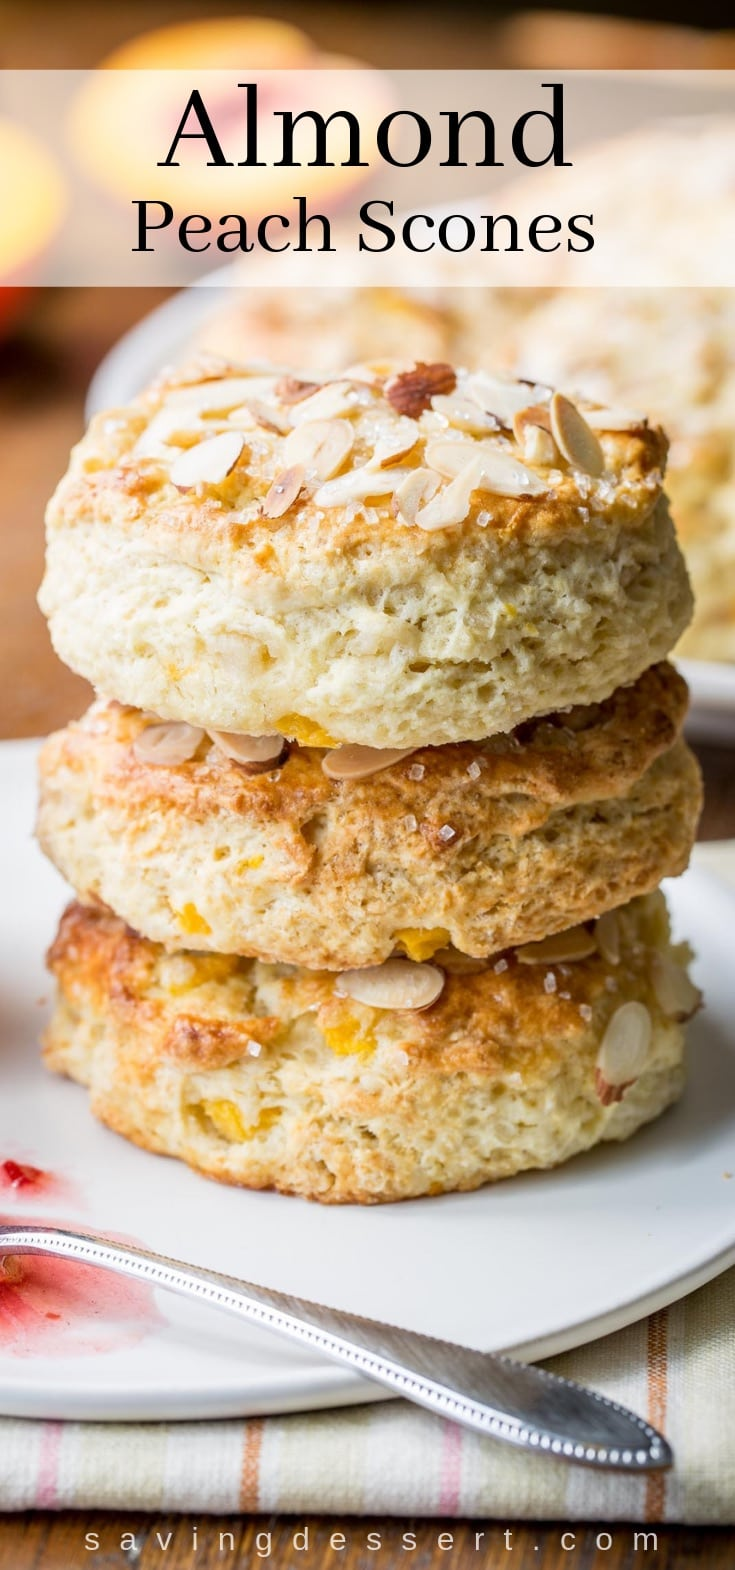 A stack of fresh almond peach scones